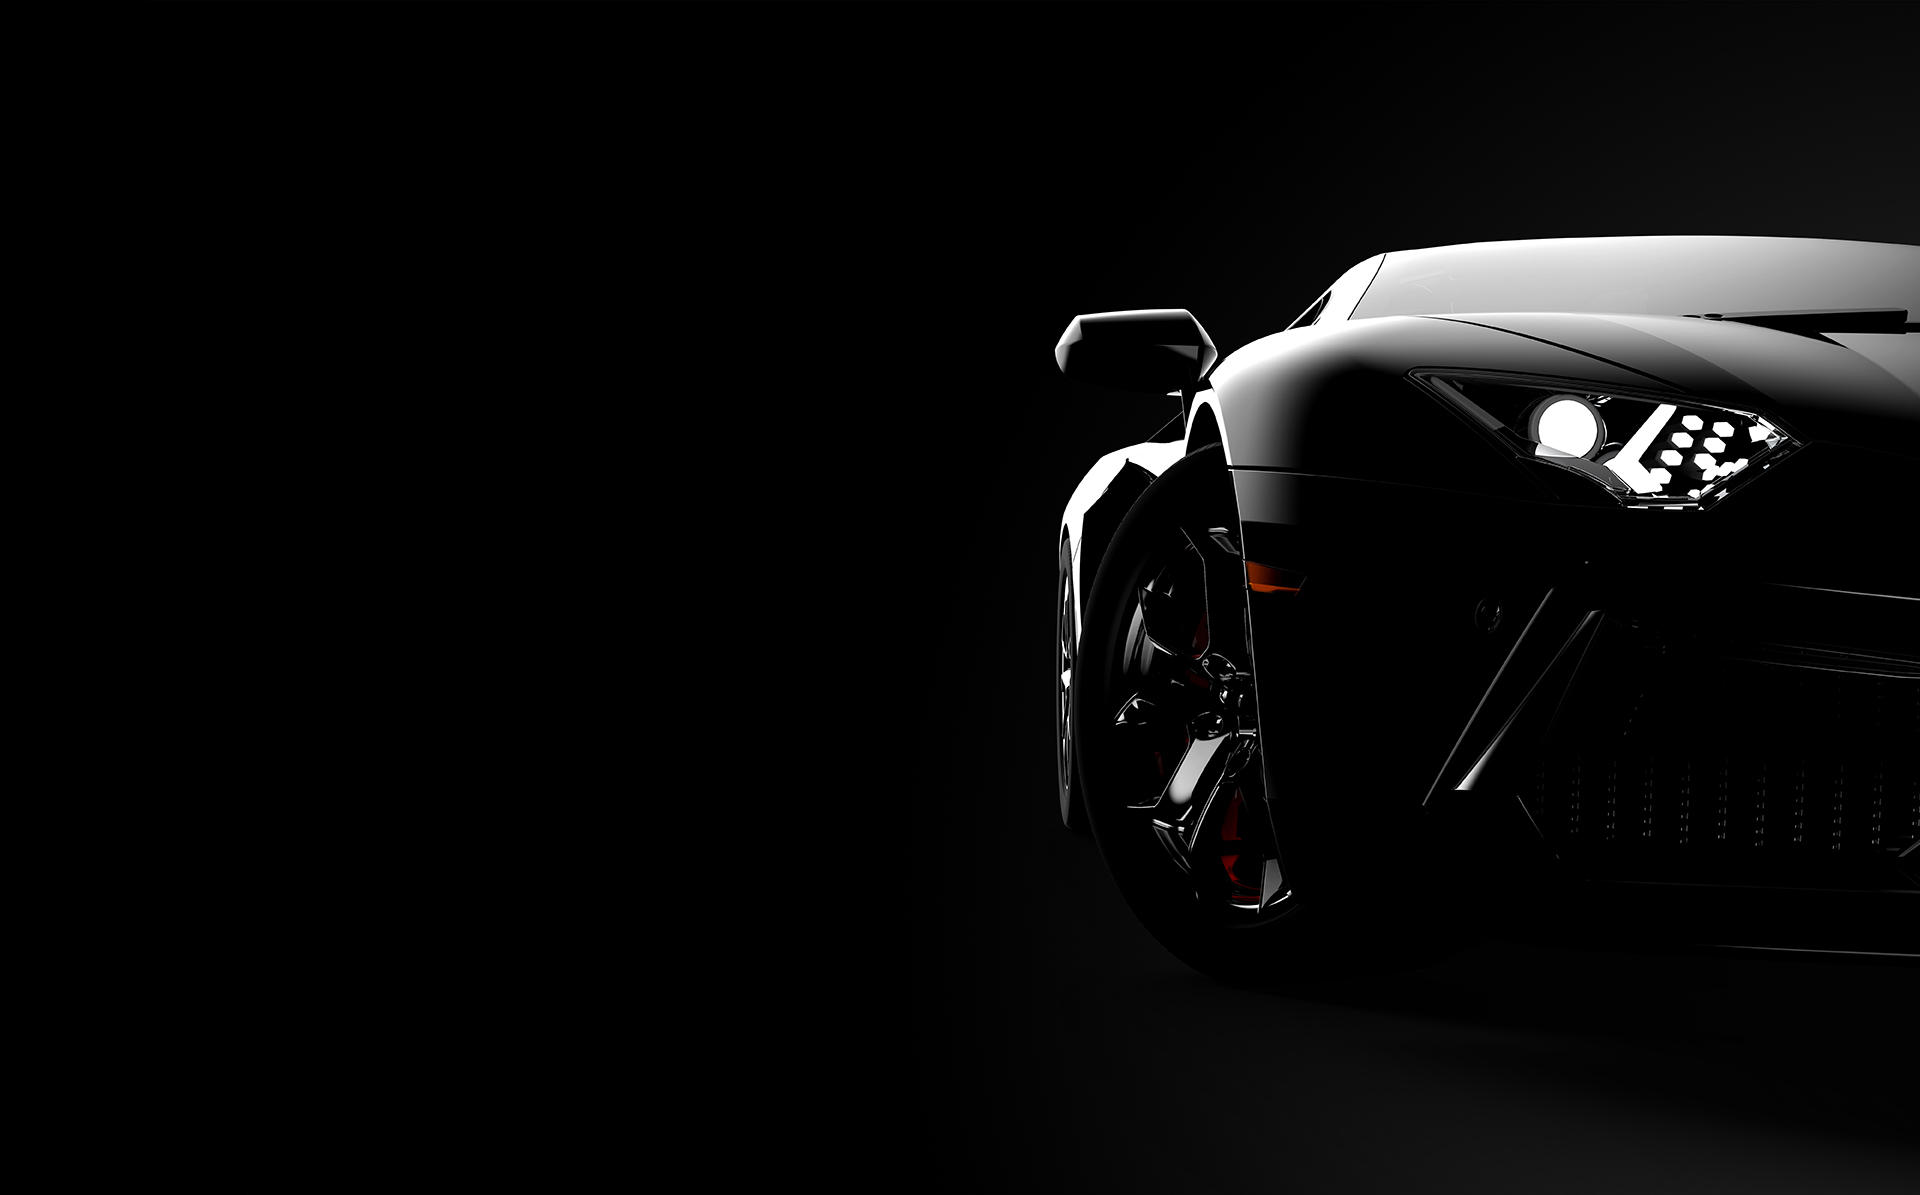 Front view of a generic and brandless modern sport car on a dark background. 3D illustration